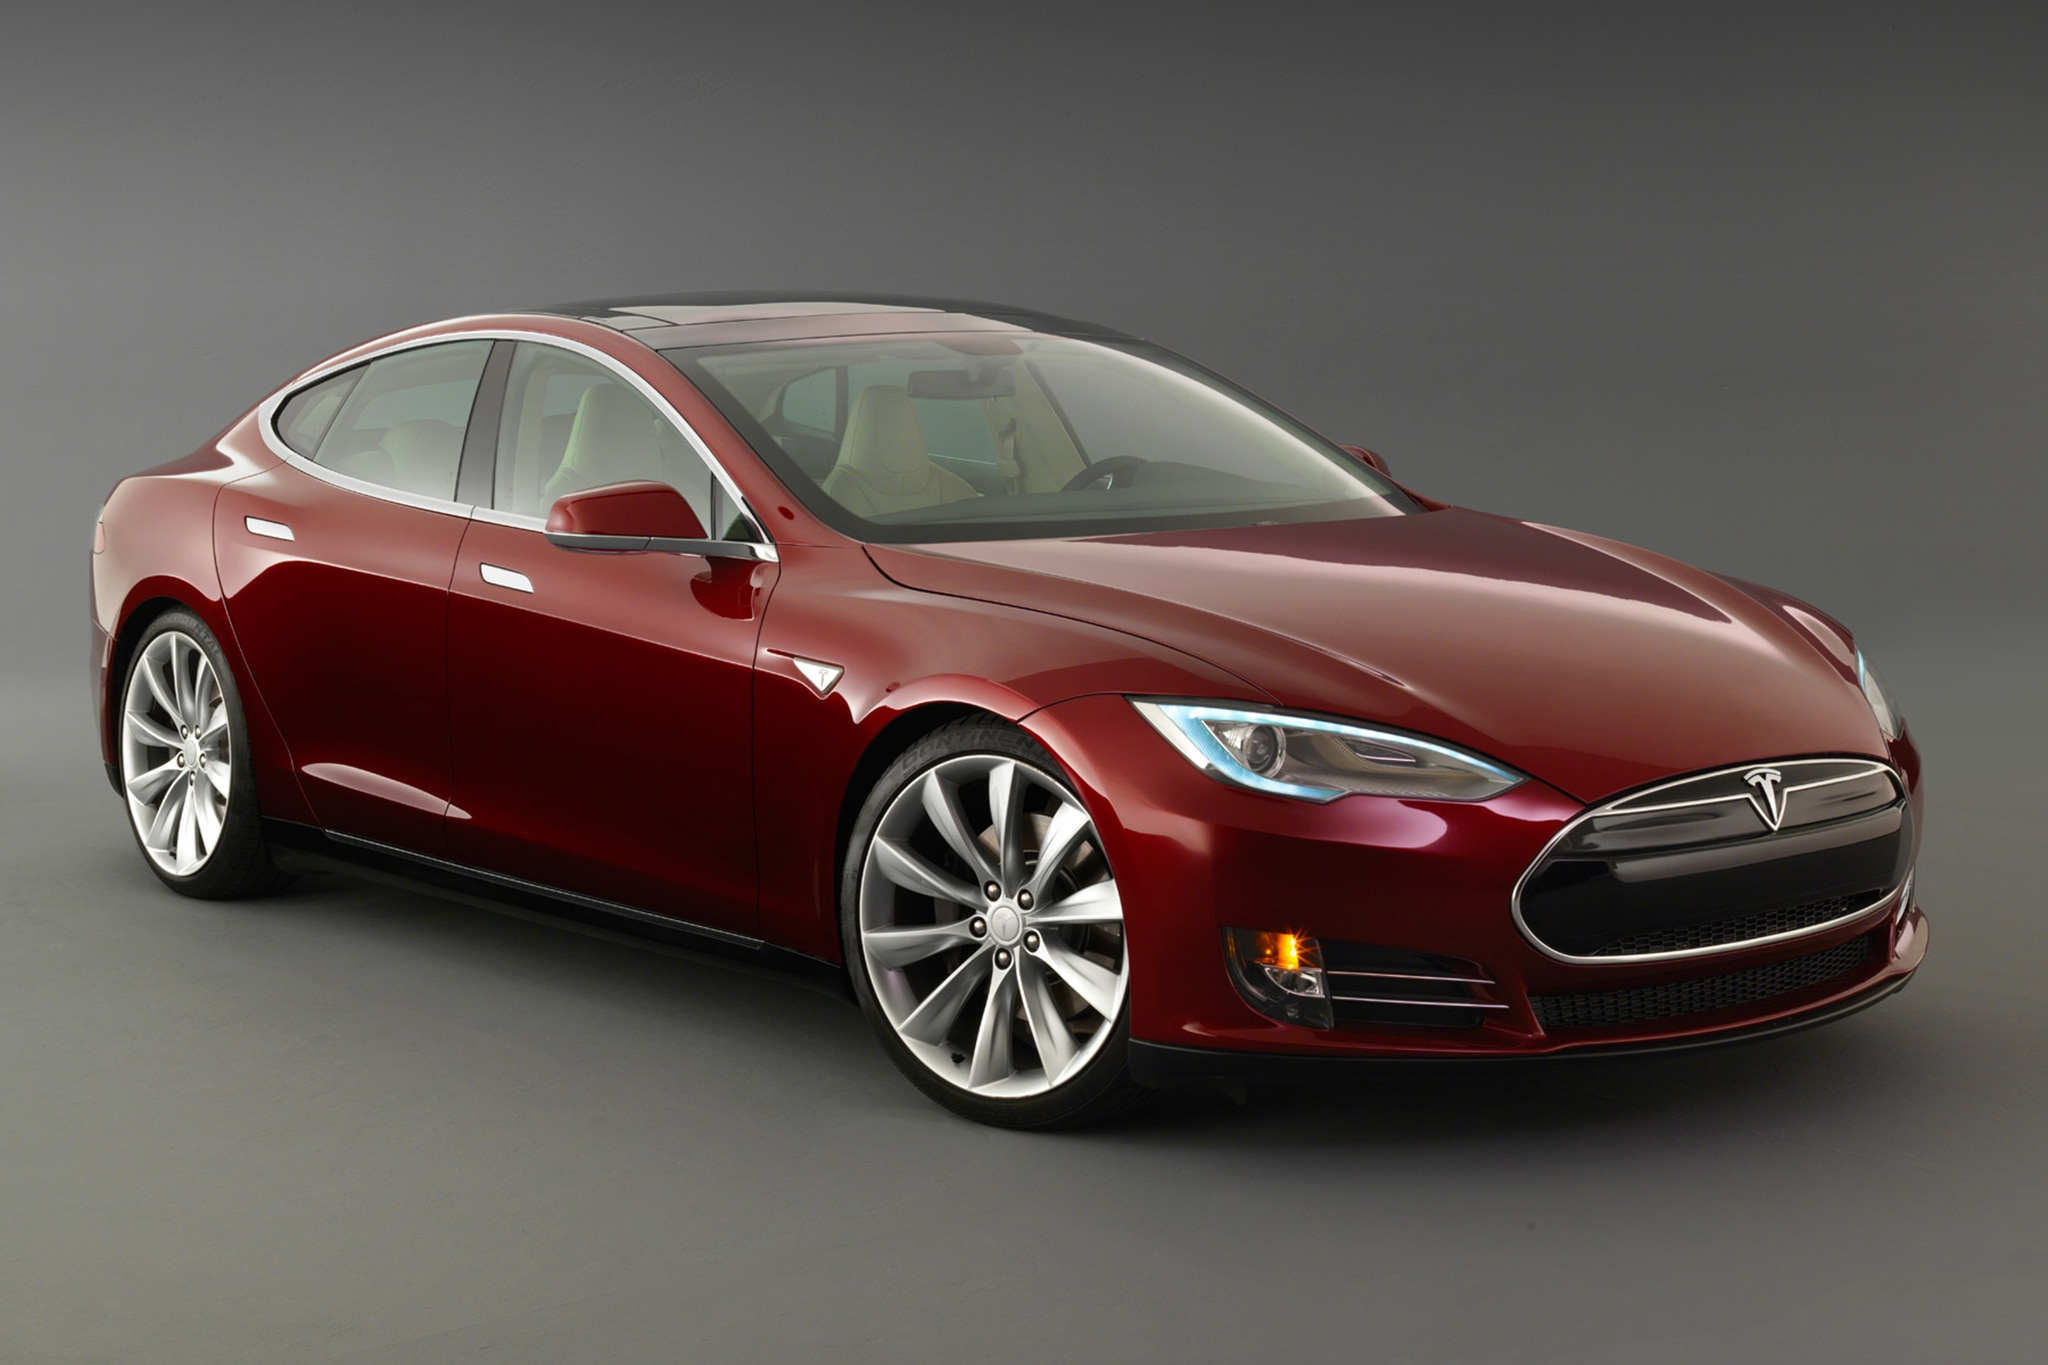 2014 Tesla Model S Three Quarters View